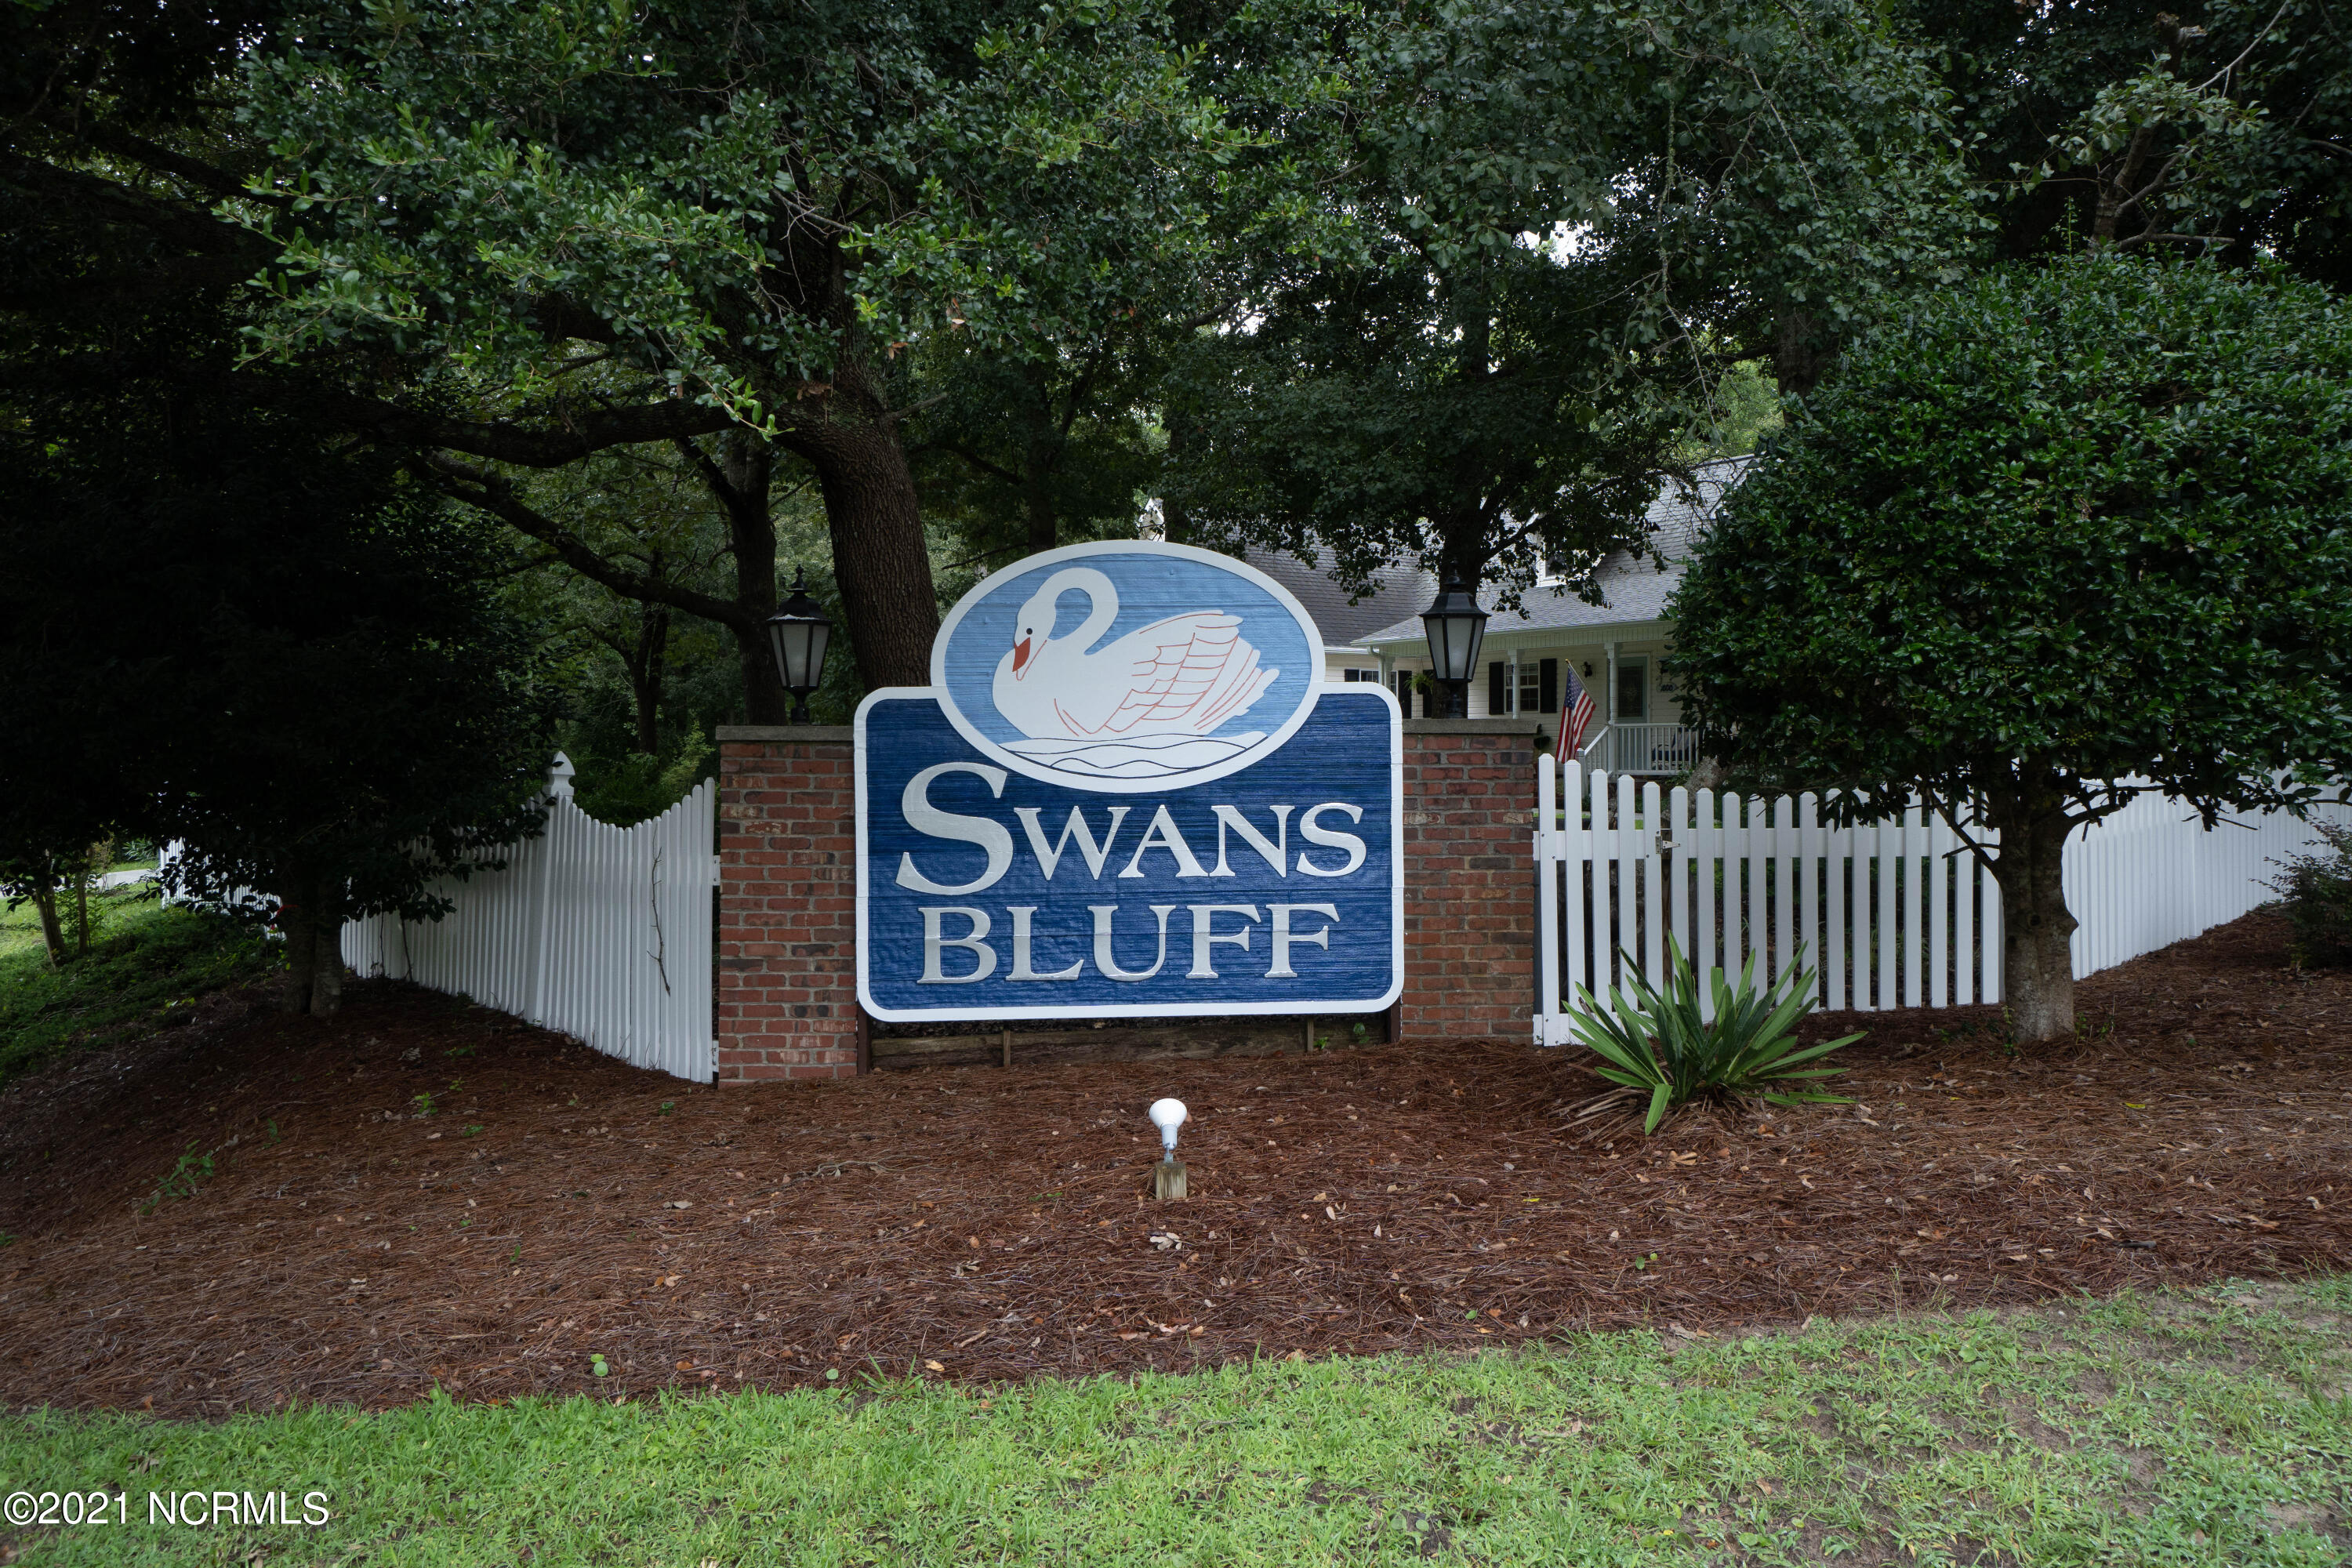 Coastal living without the coastal price tag! Come build your dream home in this beautiful waterfront community, with water access along queens creek. Close to downtown Swansboro and Hammocks Beach State Park. The lot backs up to protected wooded property. The community dock & pier allows for some great fishing, or just relax and enjoy the water views. This established waterfront neighborhood makes for a tranquil setting all the while being close to shopping and restaurants.